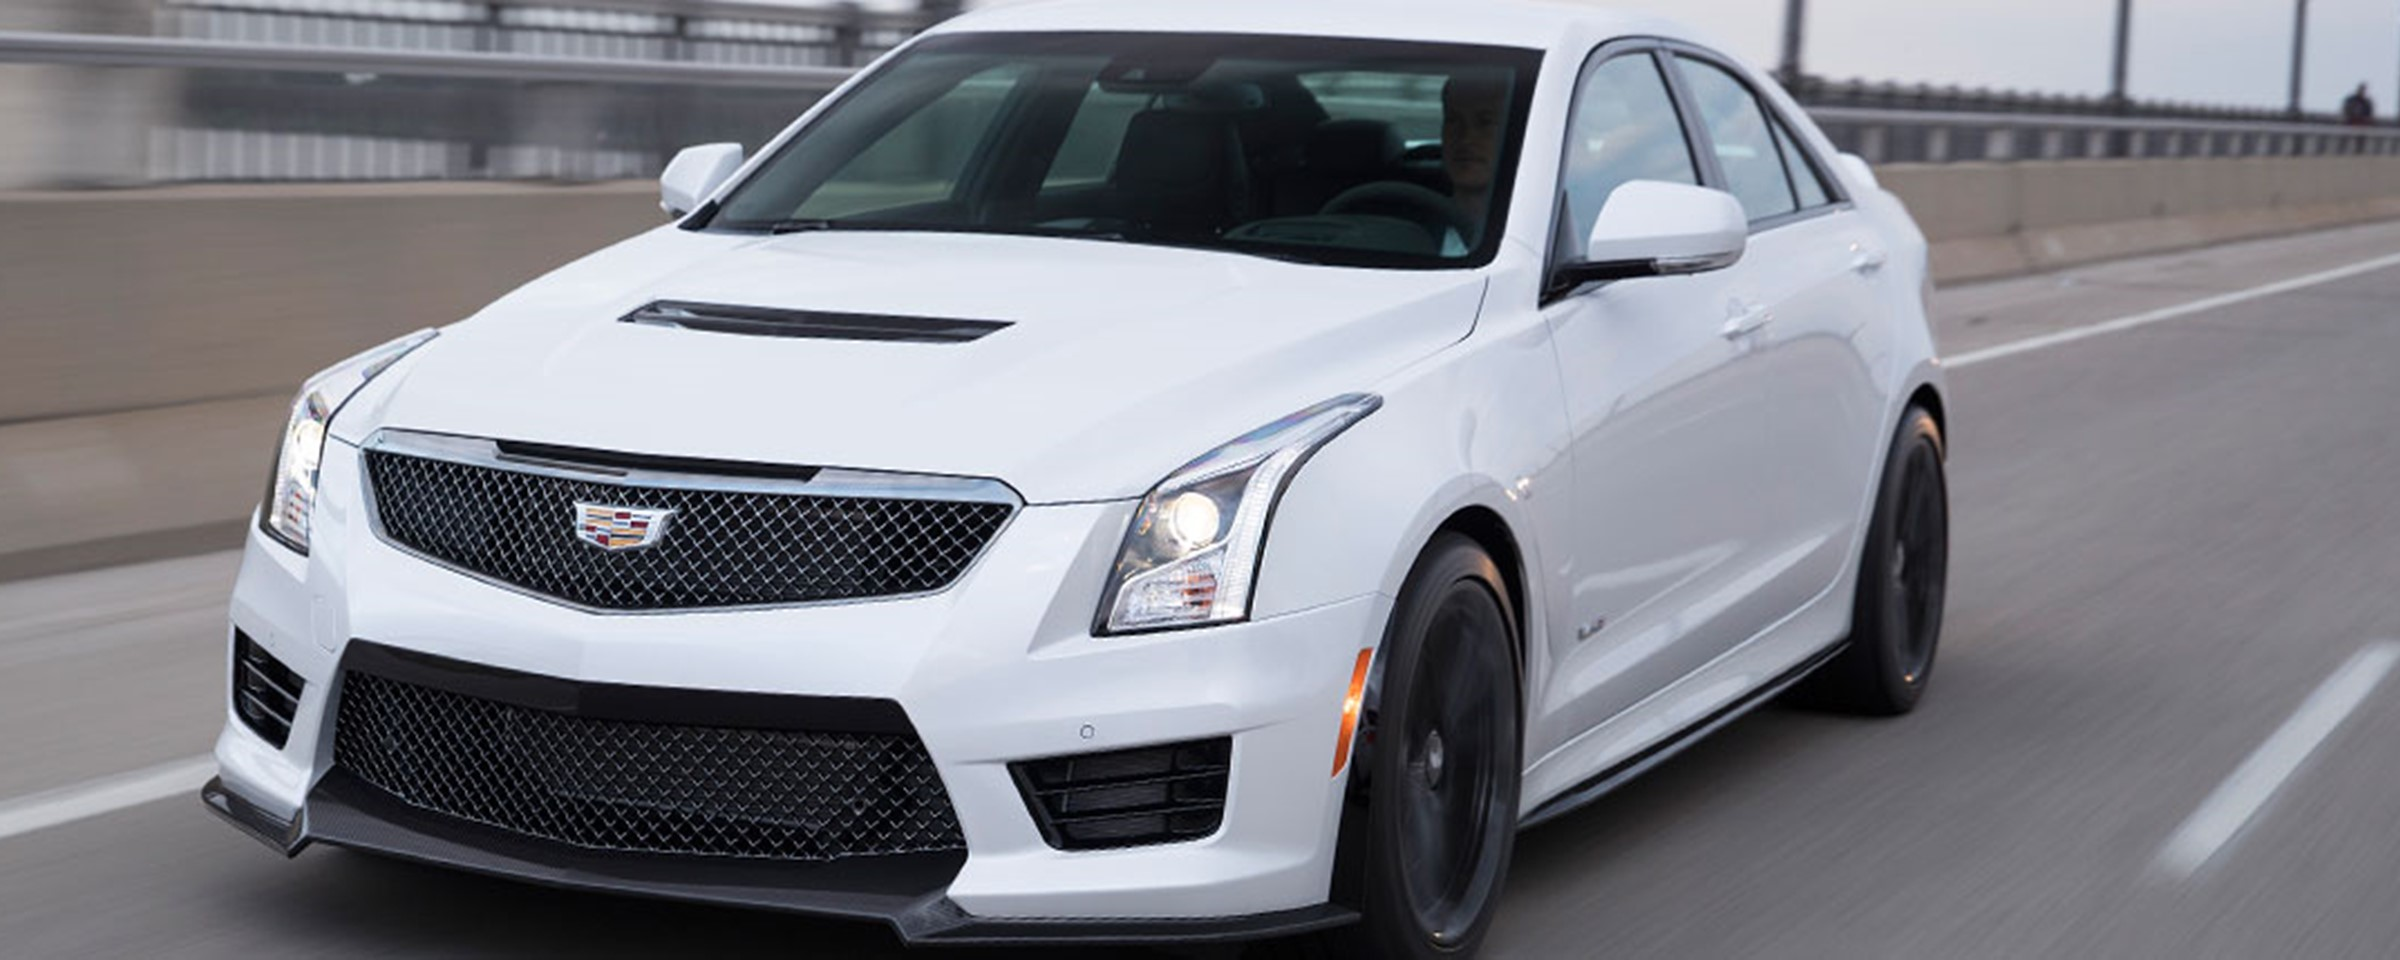 The Cadillac Ats V Coupe Carbon Black Package Baker